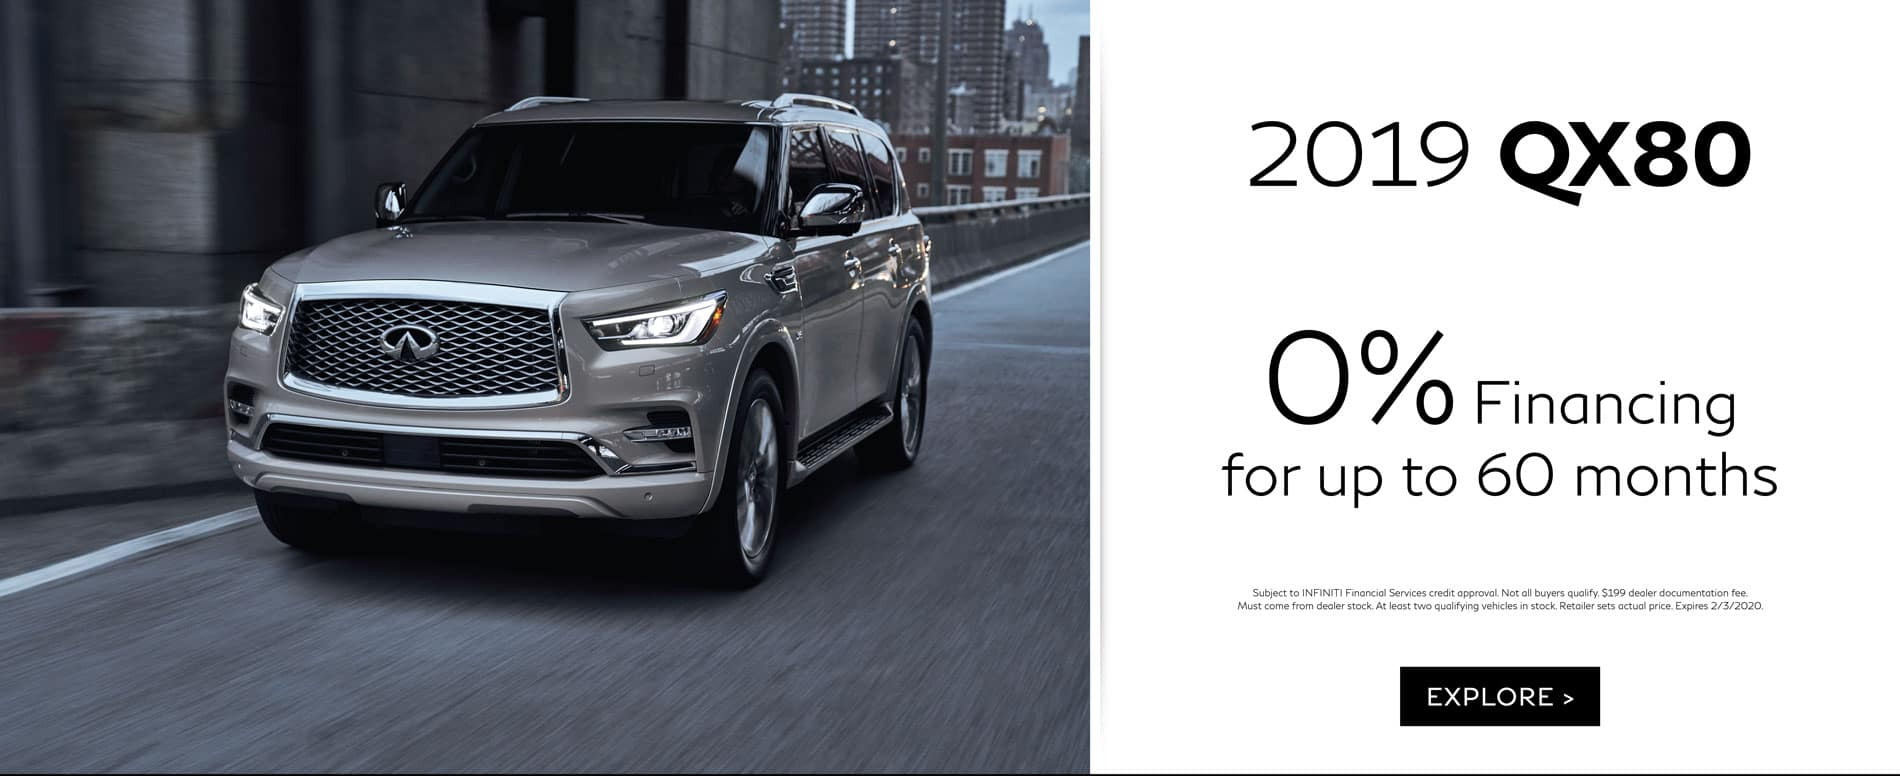 2019 QX80 January Offer | 0% APR for up to 60 months